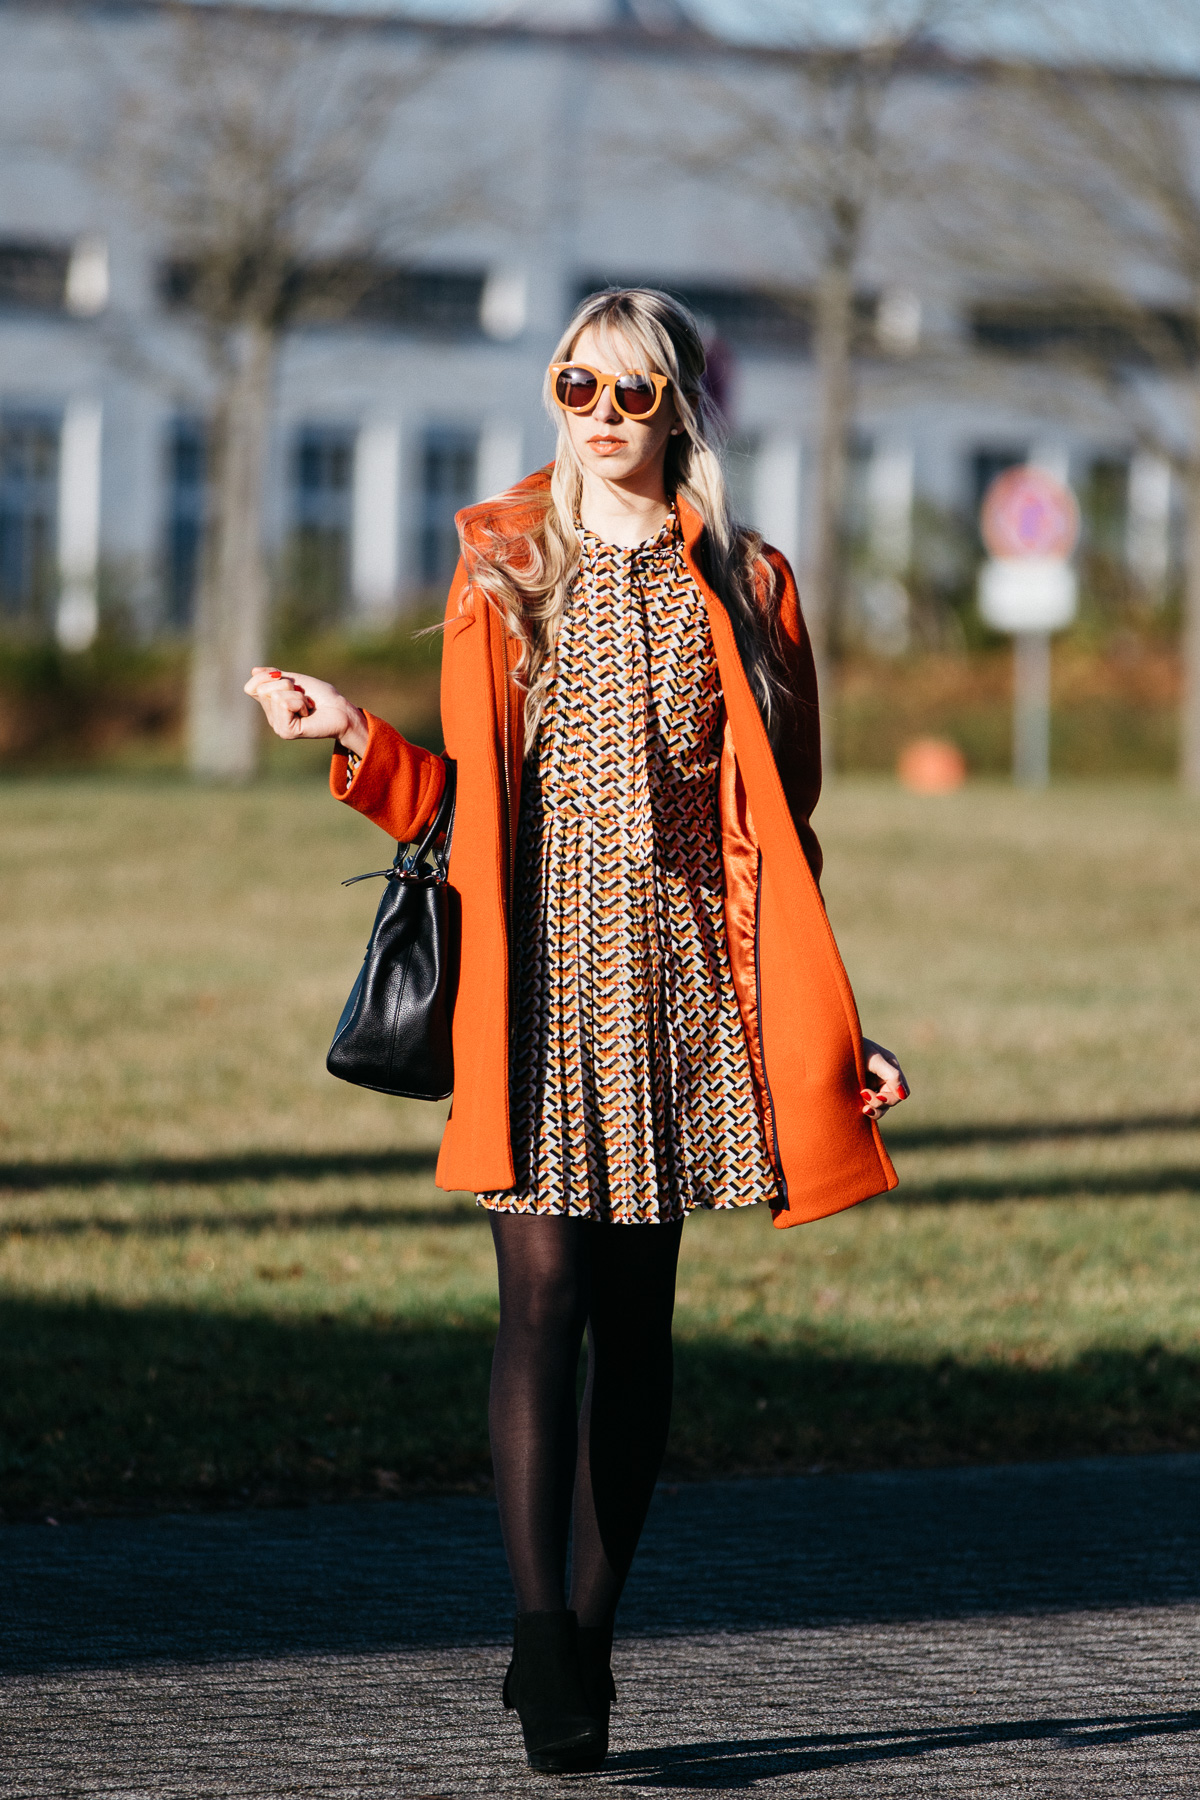 Modetrends 2017 Blogger Blog Deutscher Modeblog Fashionblogger Trends Frisurentrends J.Crew Cocoon Coat Pepe Jeans Kleid 70er Karen Walker Super Duper Sunglasses Kate Spade Tasche Kiomi Stiefeletten mit Schleife Veloursleder